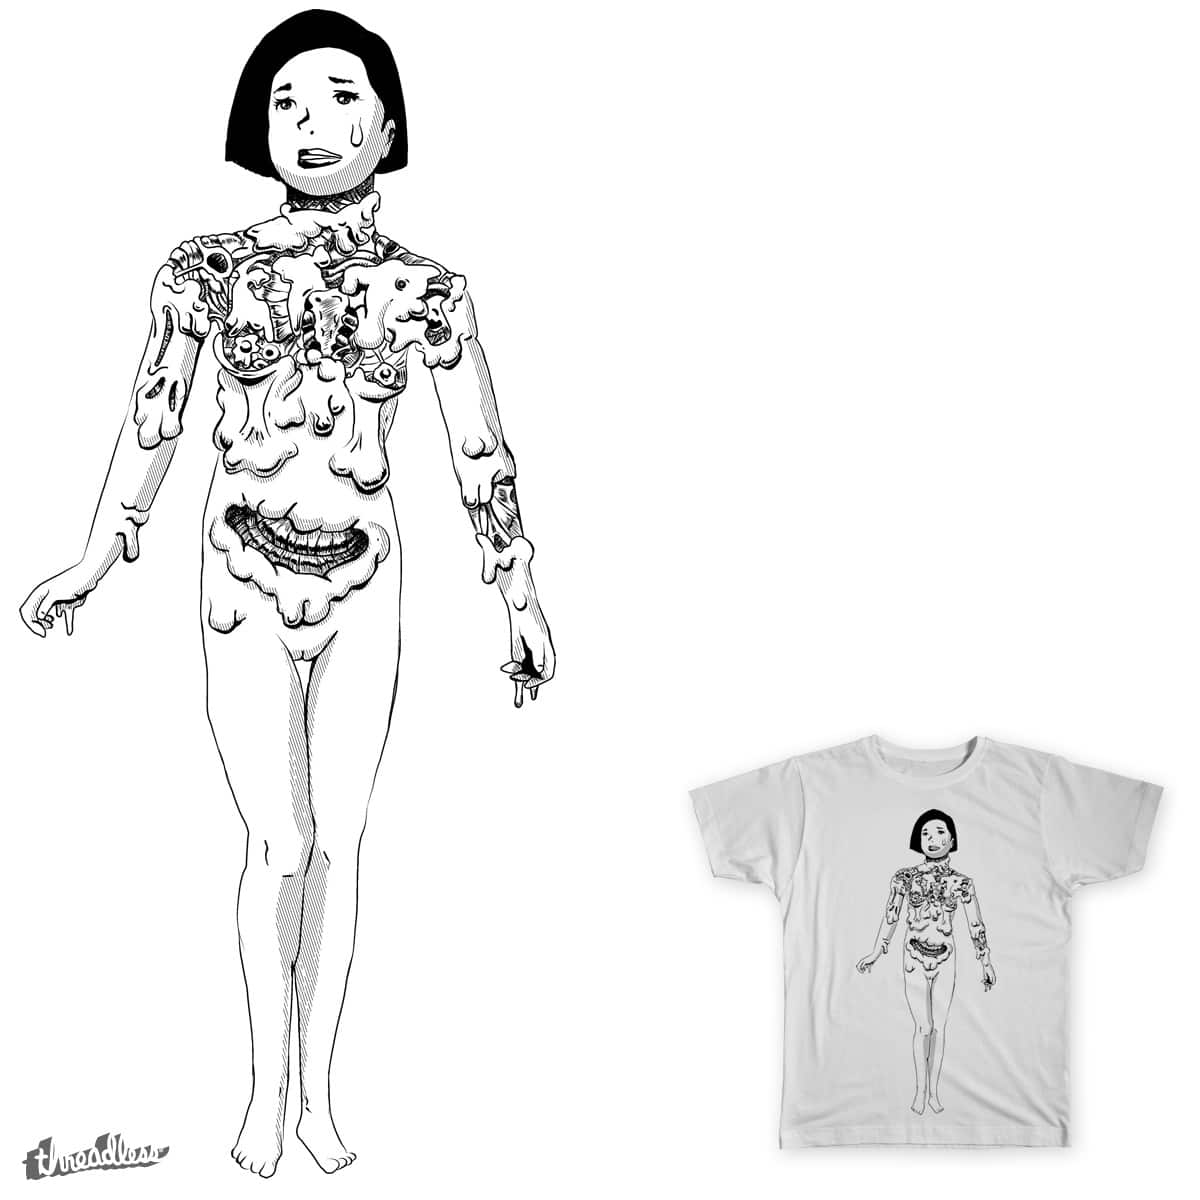 Mary by irkzlabel on Threadless